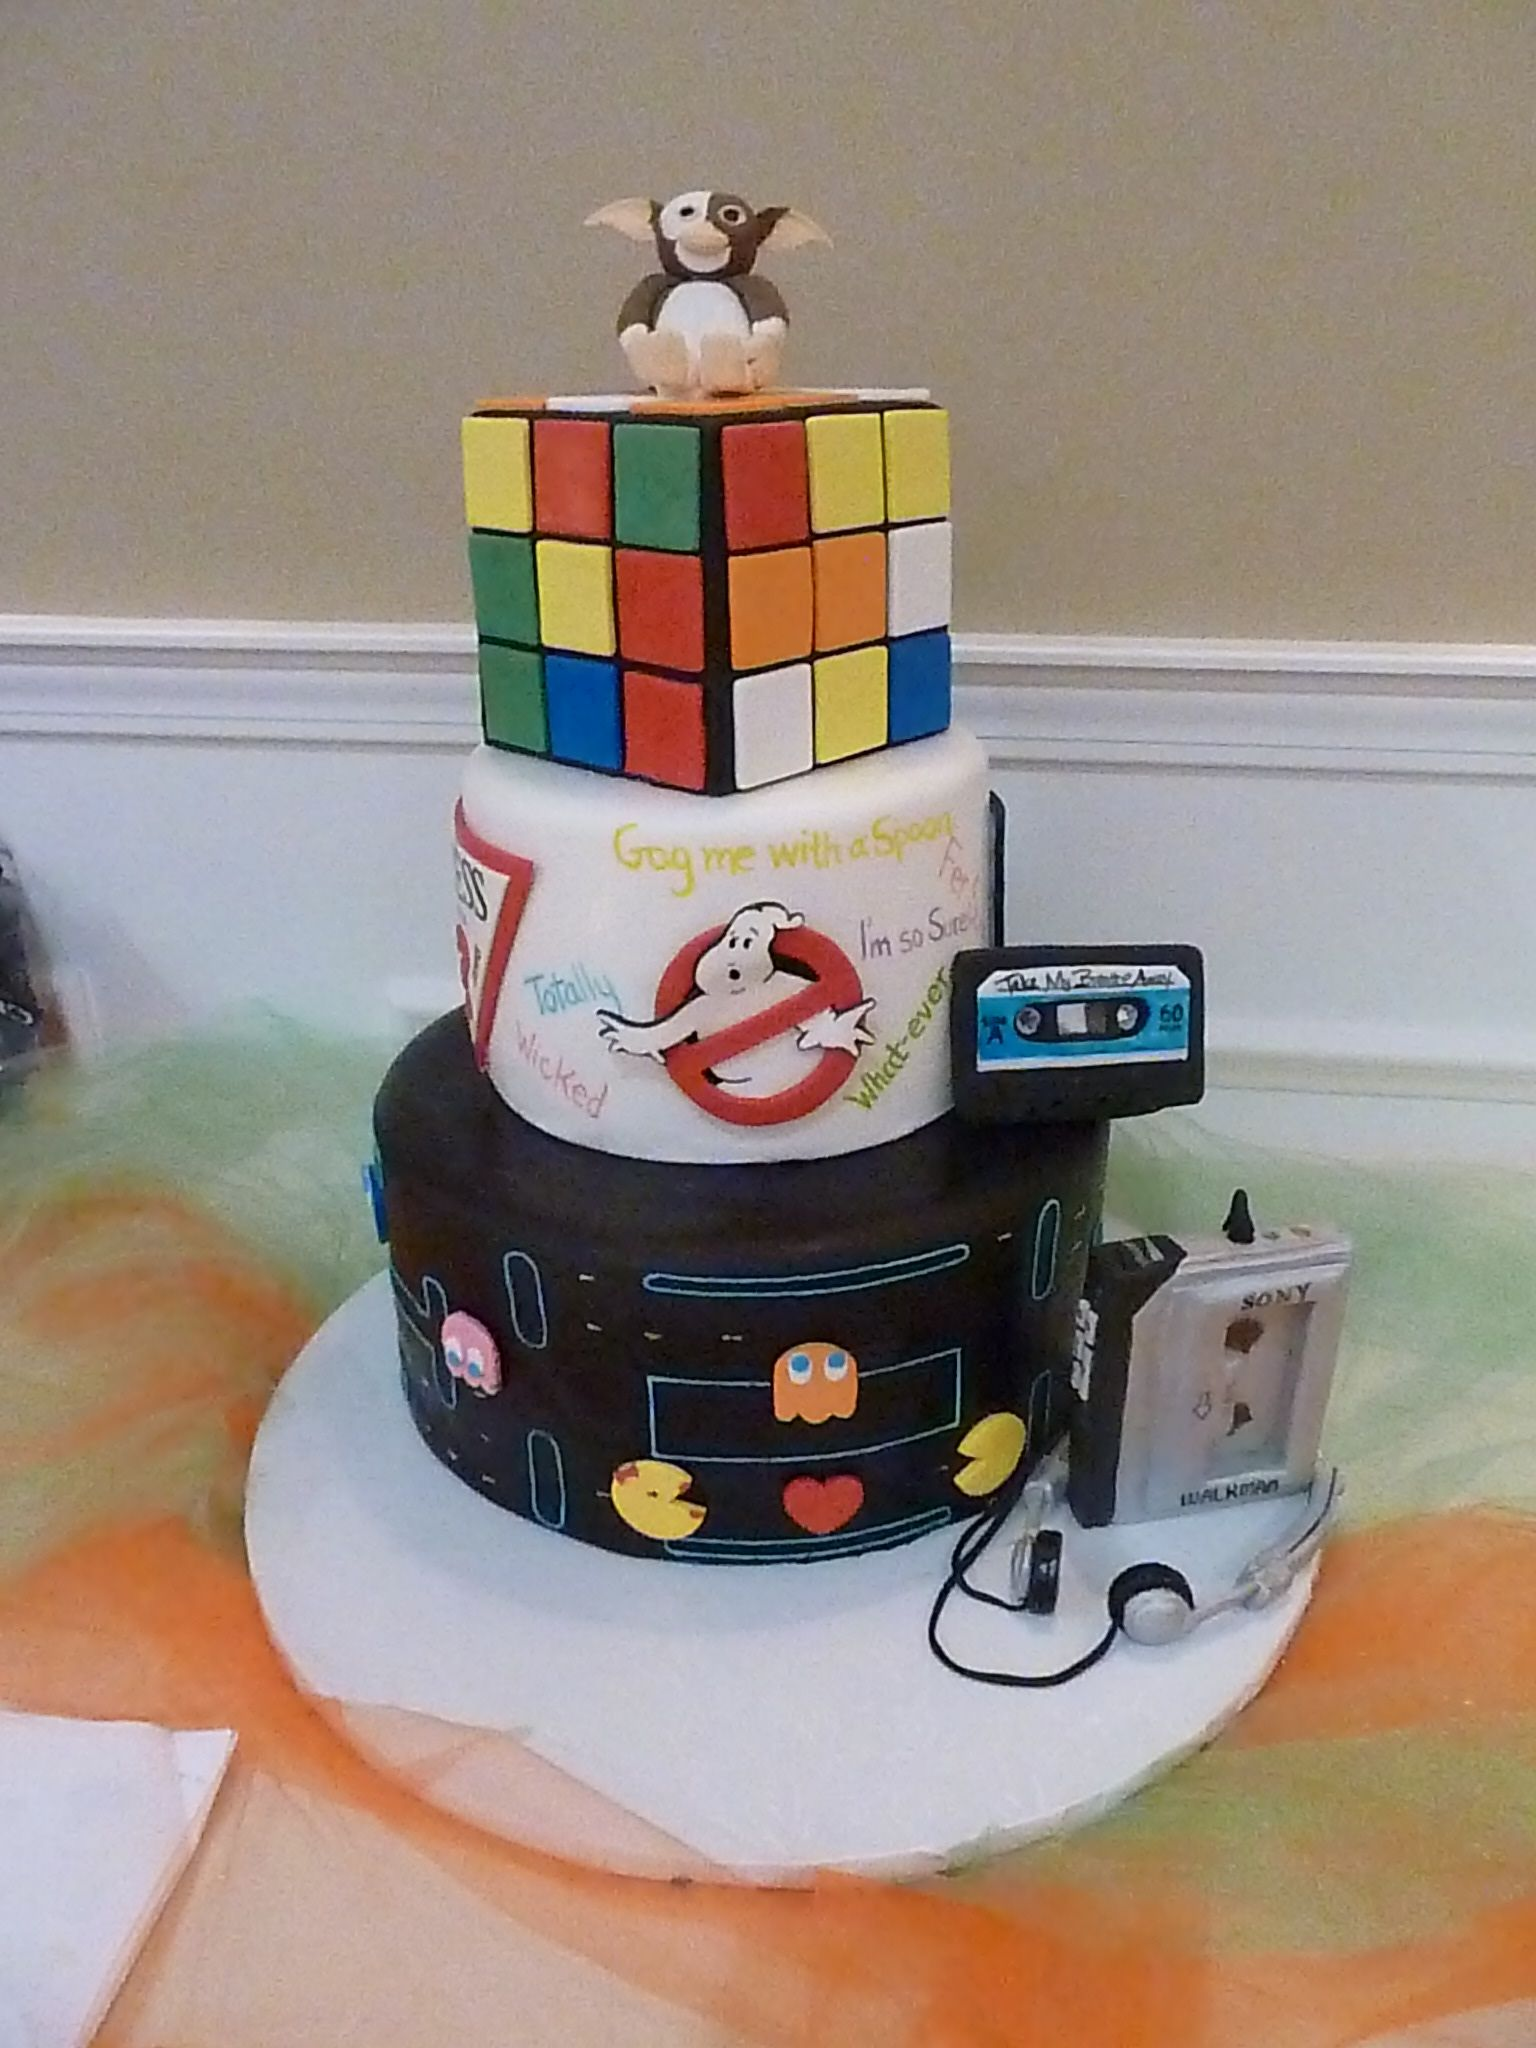 1980s Themed Wedding Cake Everything Is 100 Edible Including